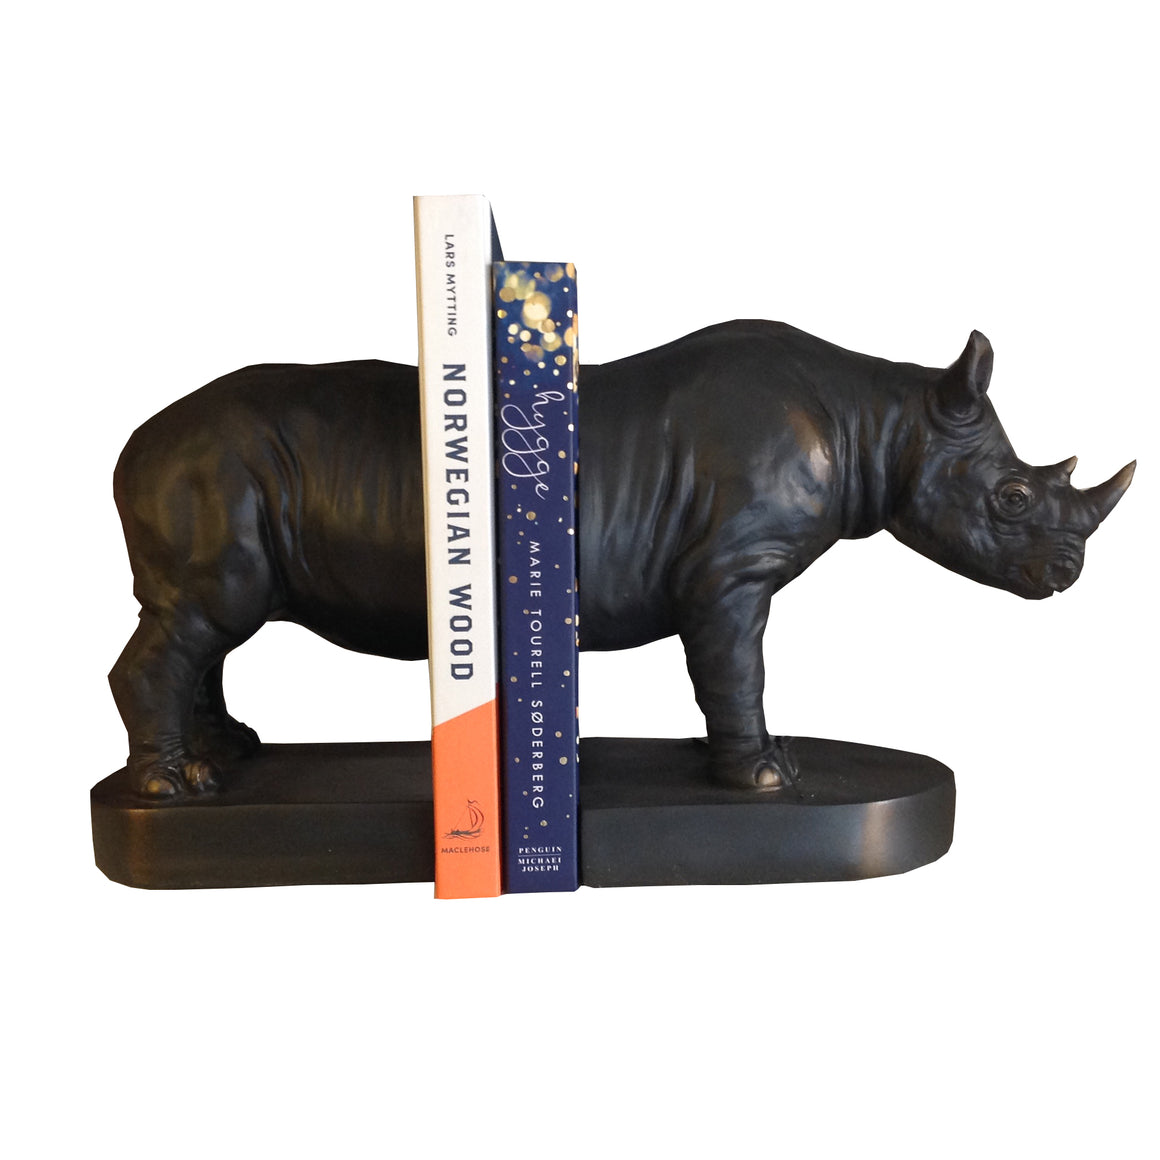 Rhino Bookends Gift